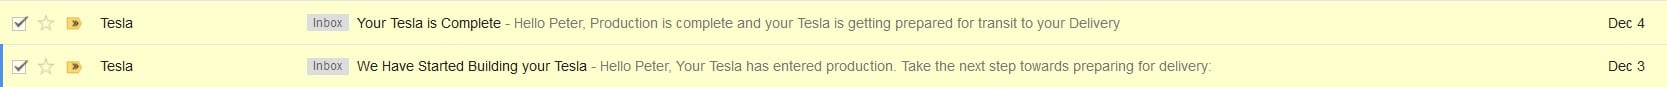 1 day to build a tesla.jpg